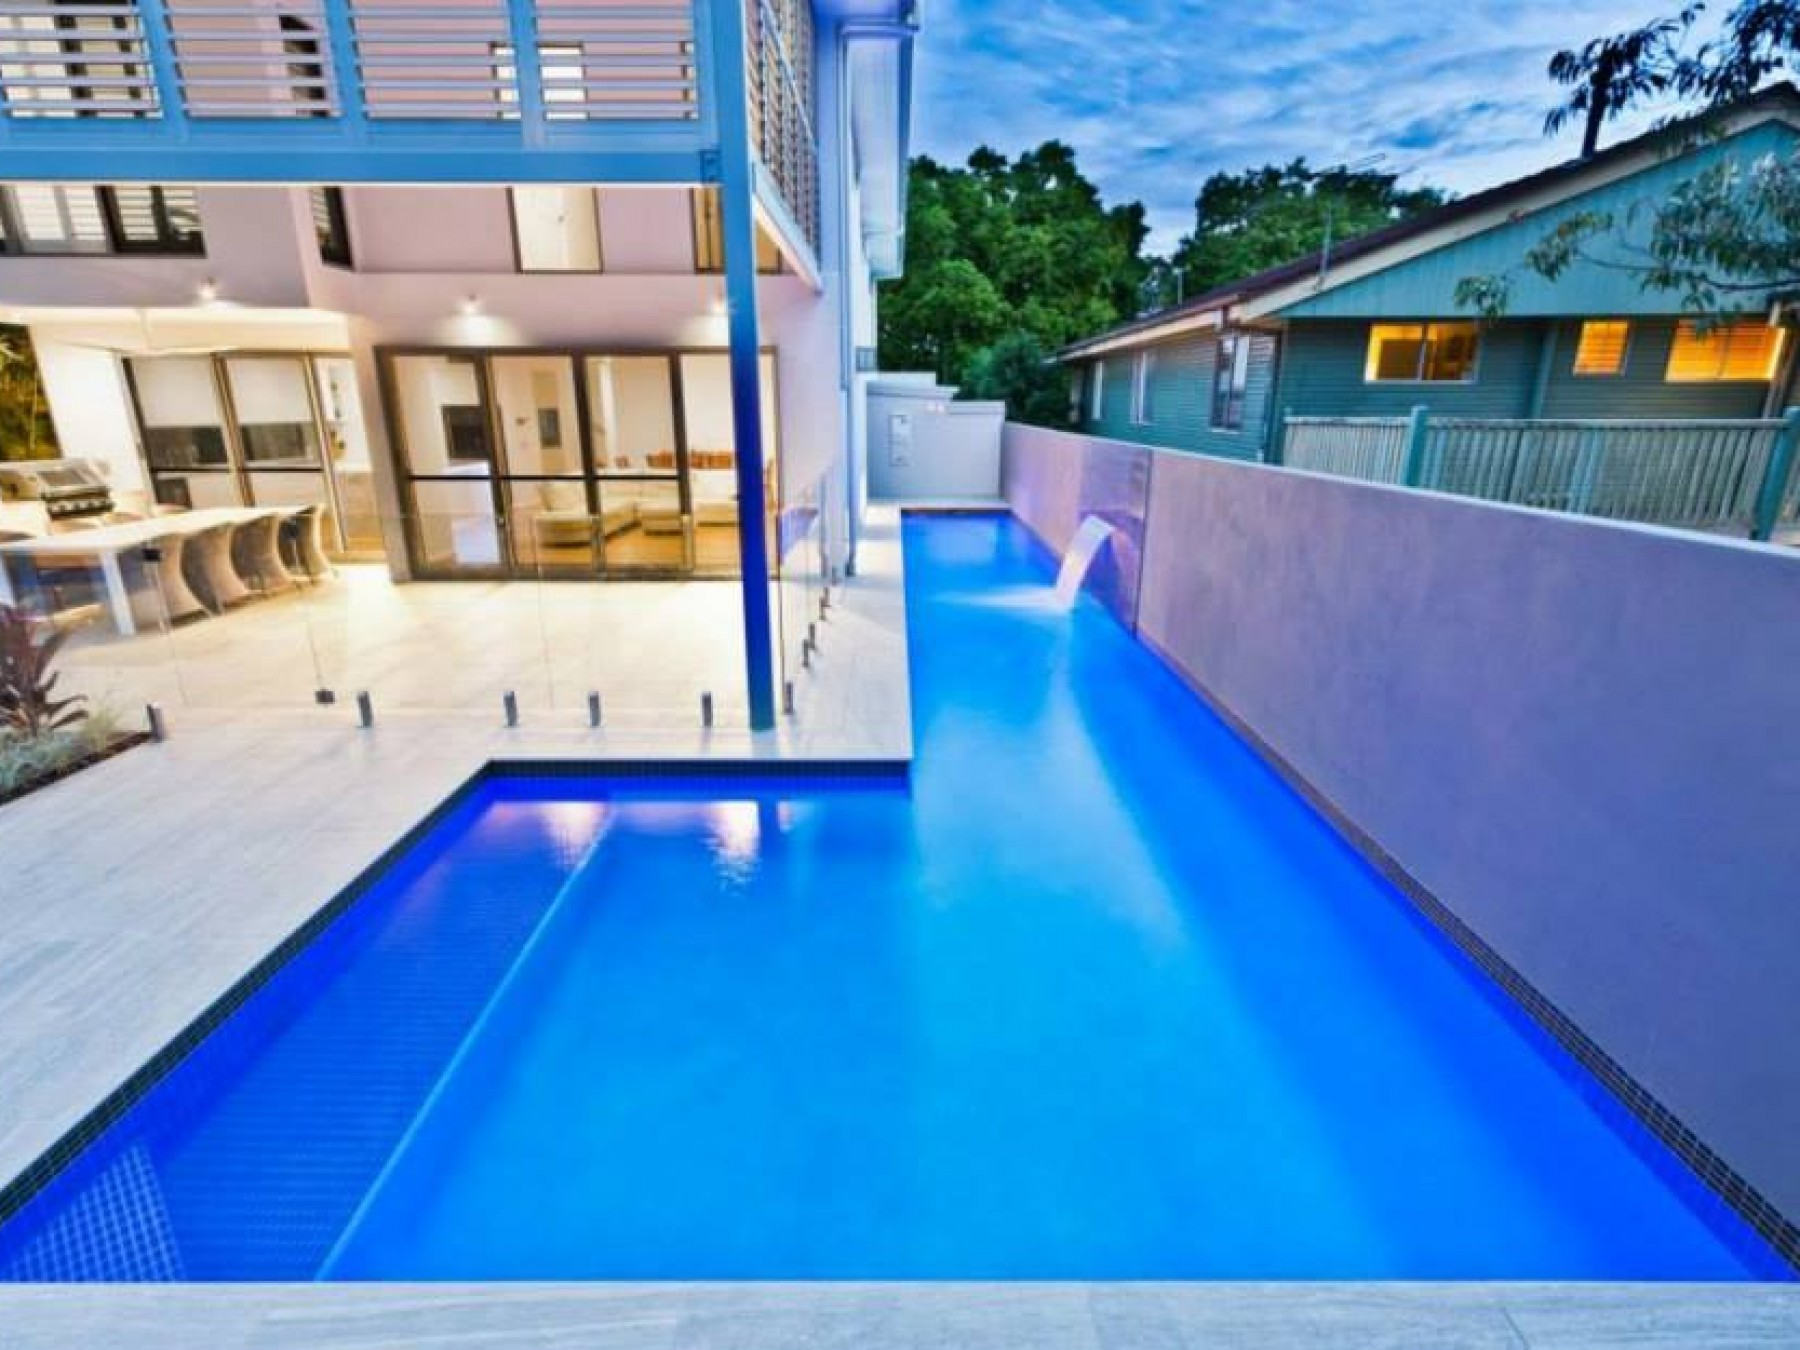 Selling or Leasing a pool in Corinda